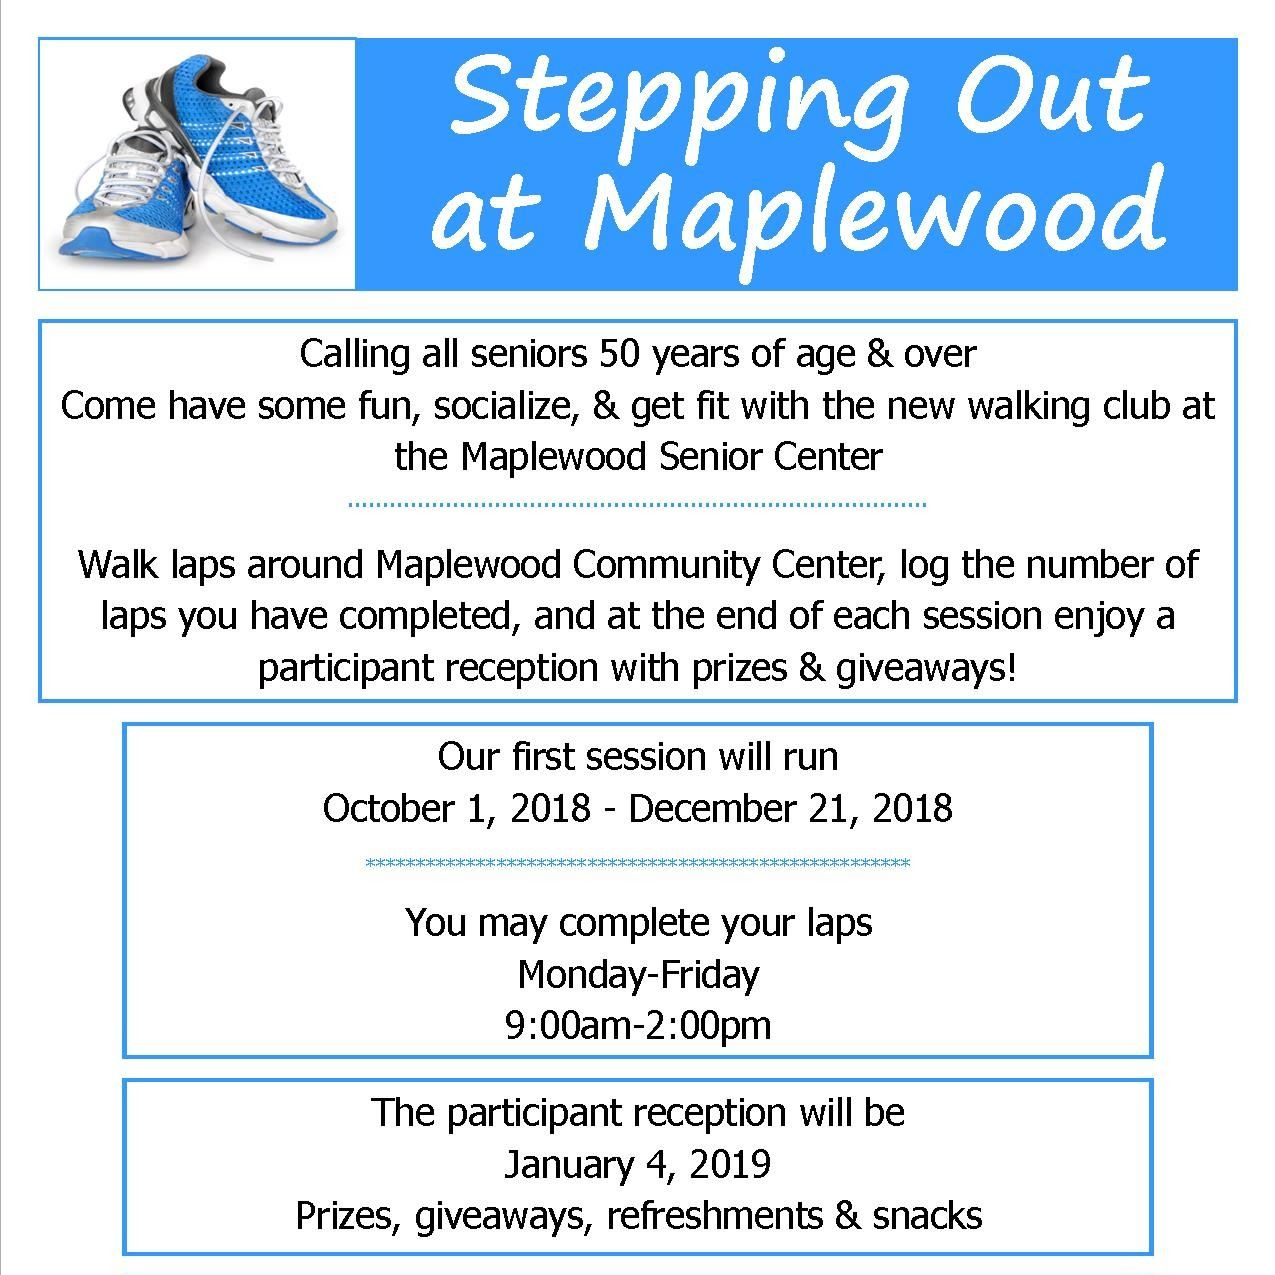 Stepping out at Maplewood small